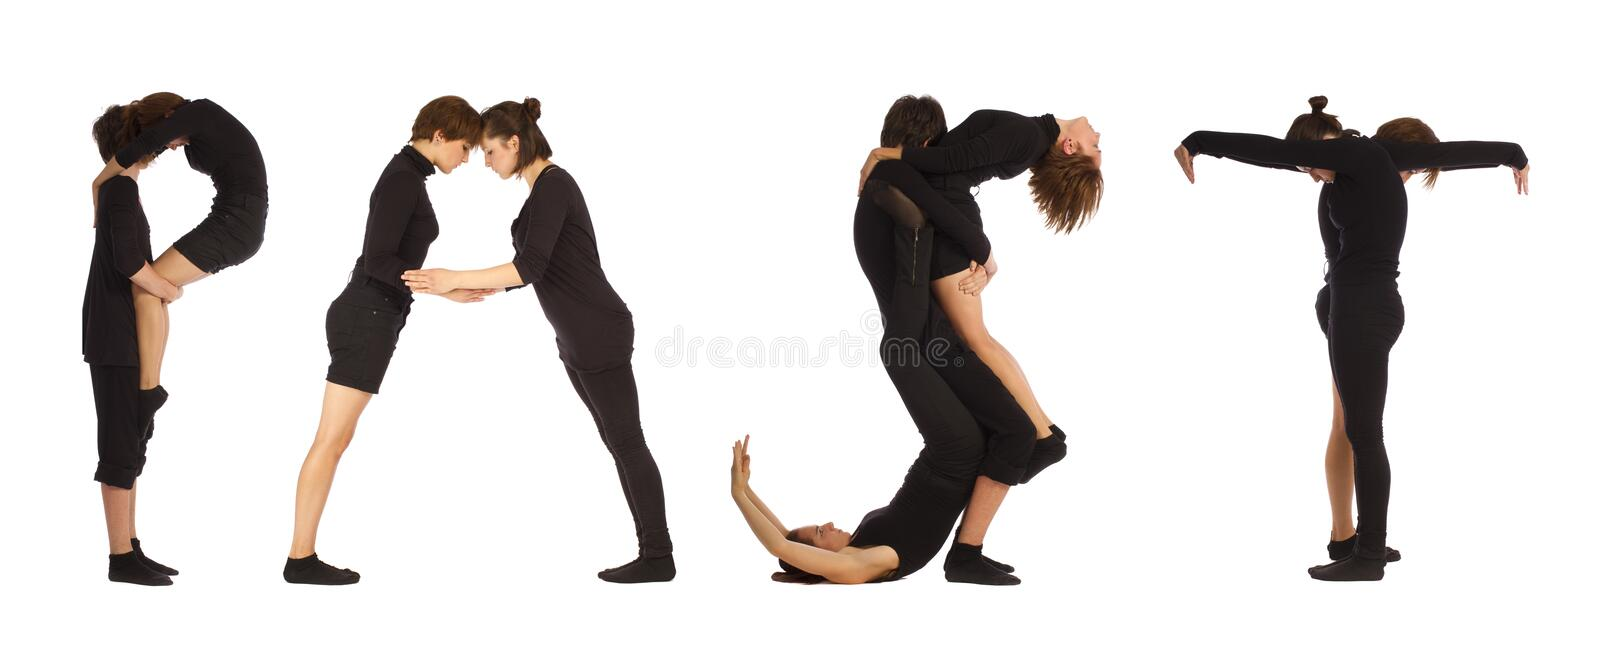 Black dressed people forming PAST word royalty free stock images